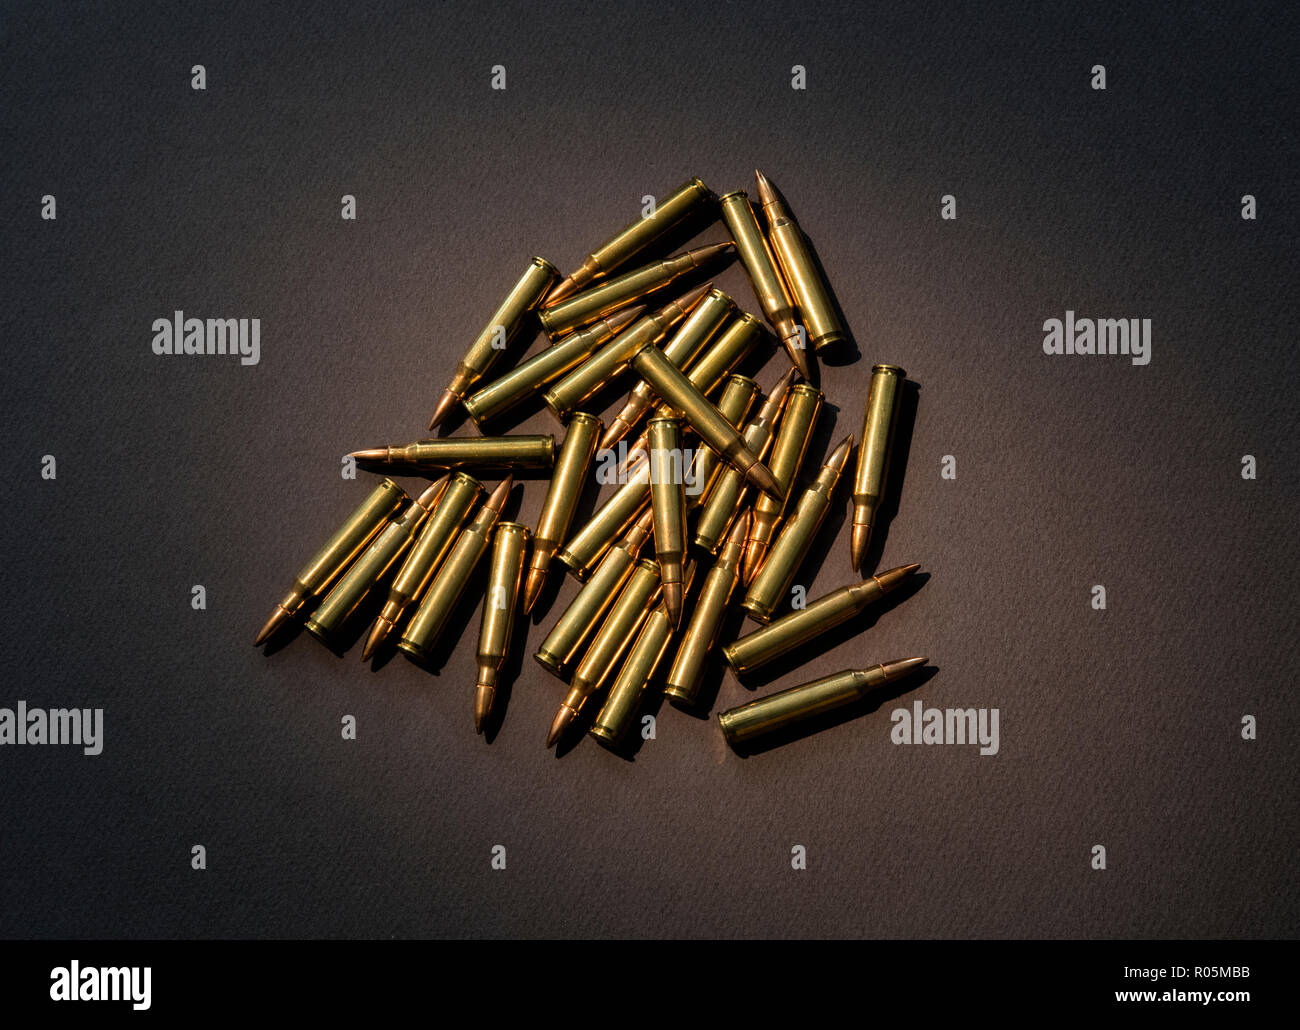 Live ammunition for the AR-15 rifle - Stock Image